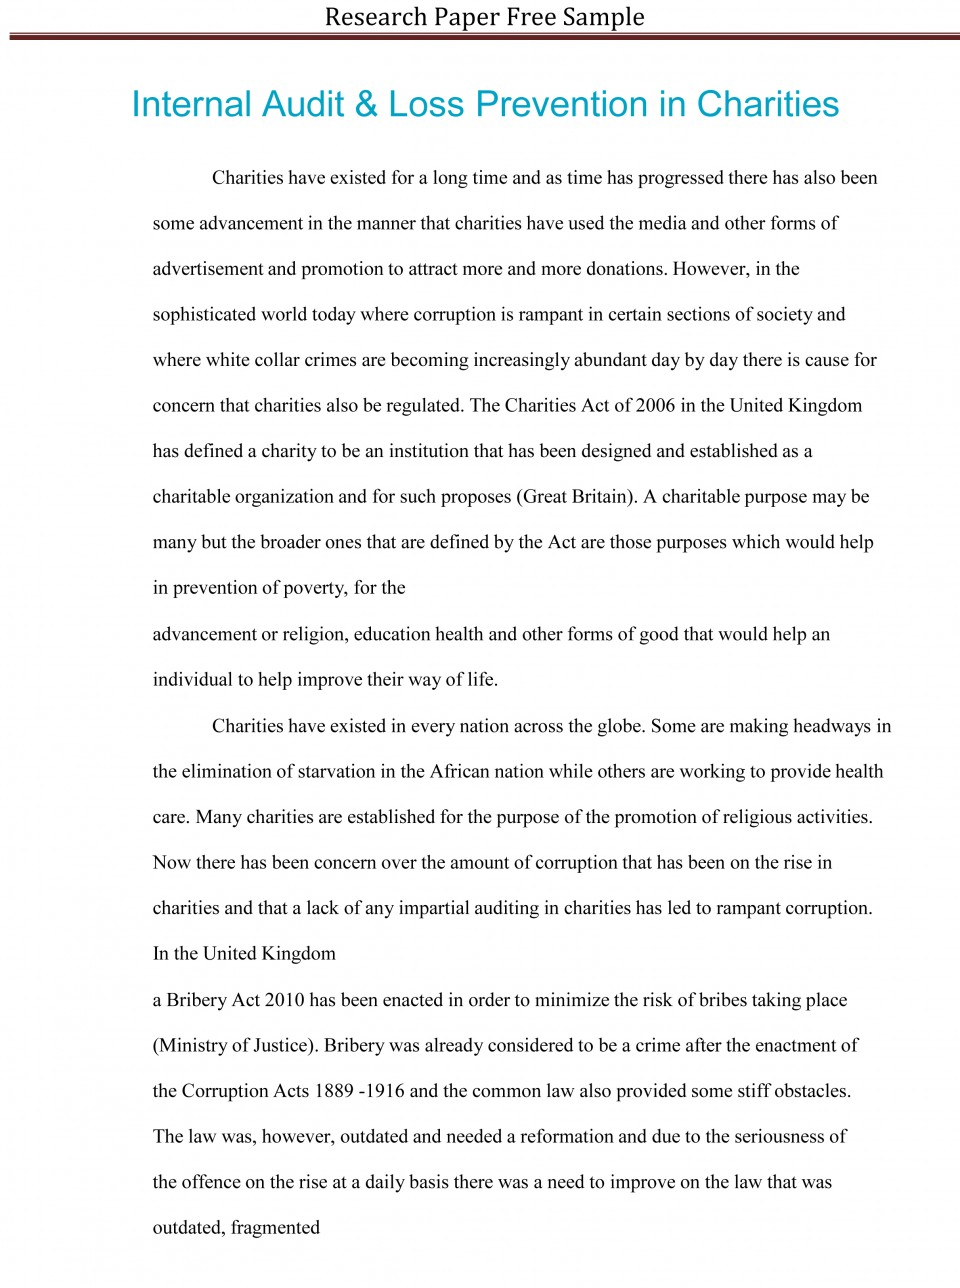 014 Example Of Introduction In Research Paper Help Writing Paragraph Unique About Business Bullying Cyberbullying 960